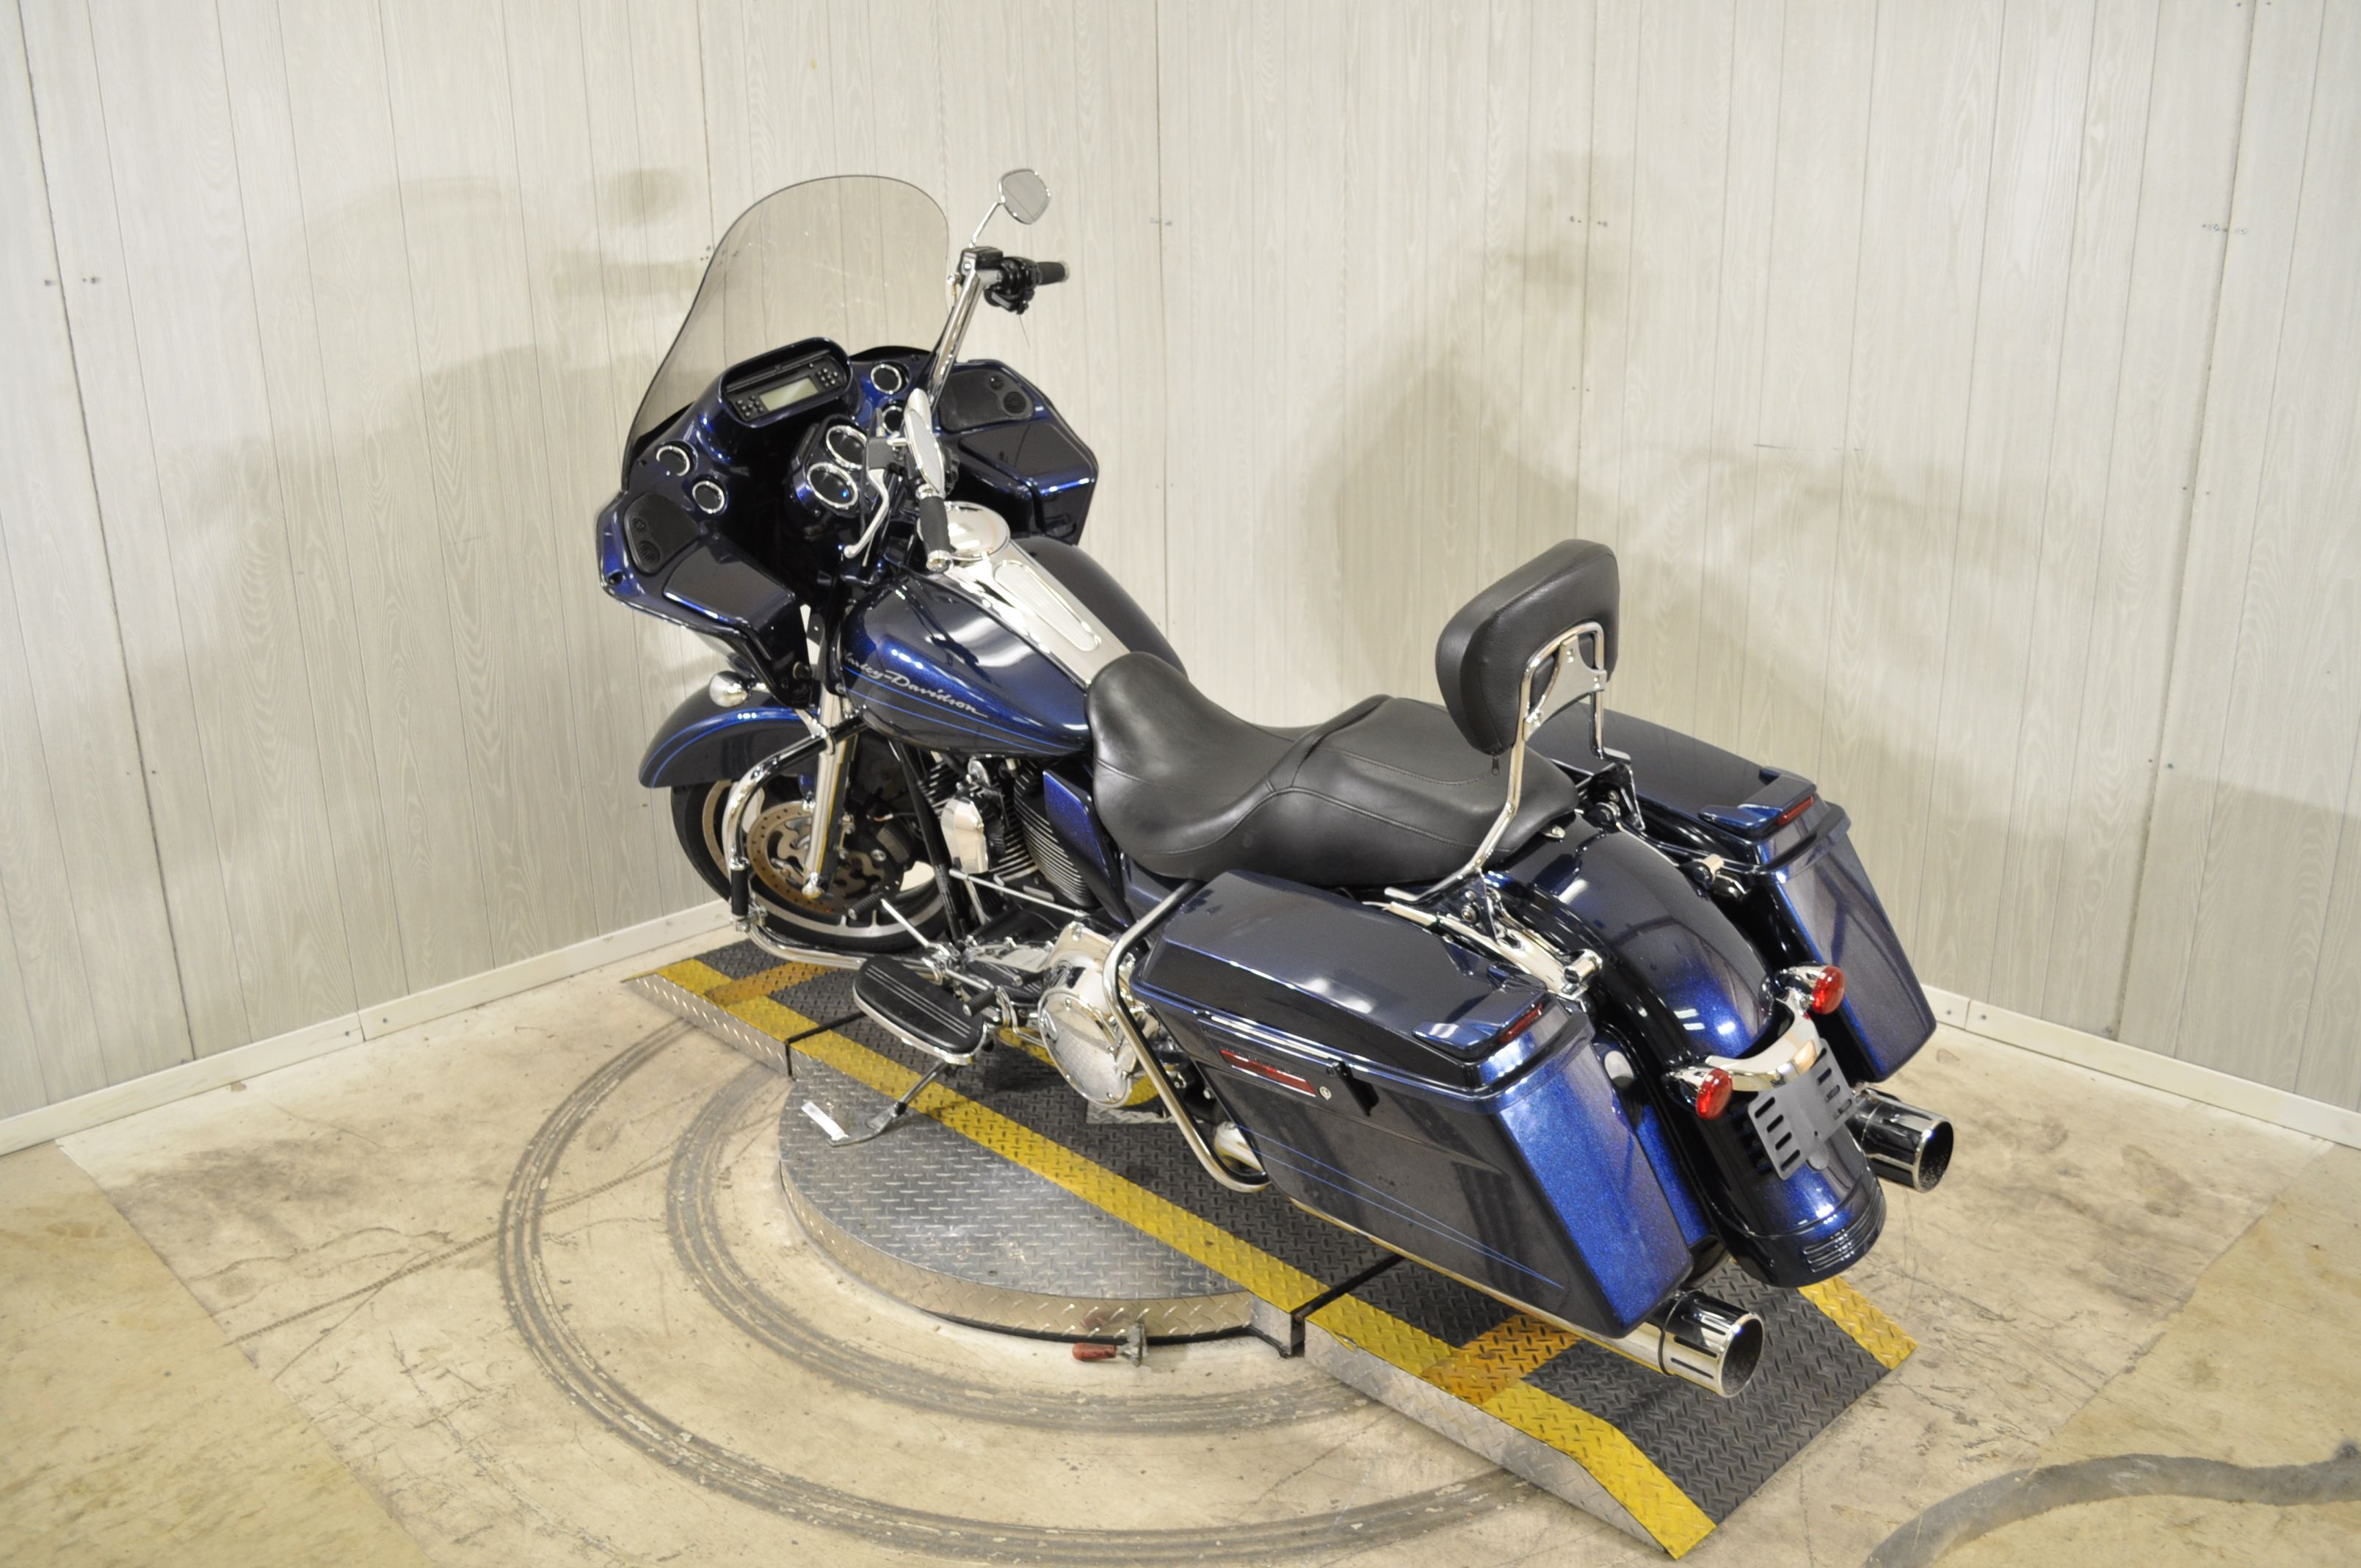 Pre-Owned 2013 Harley-Davidson Road Glide Custom FLTRX